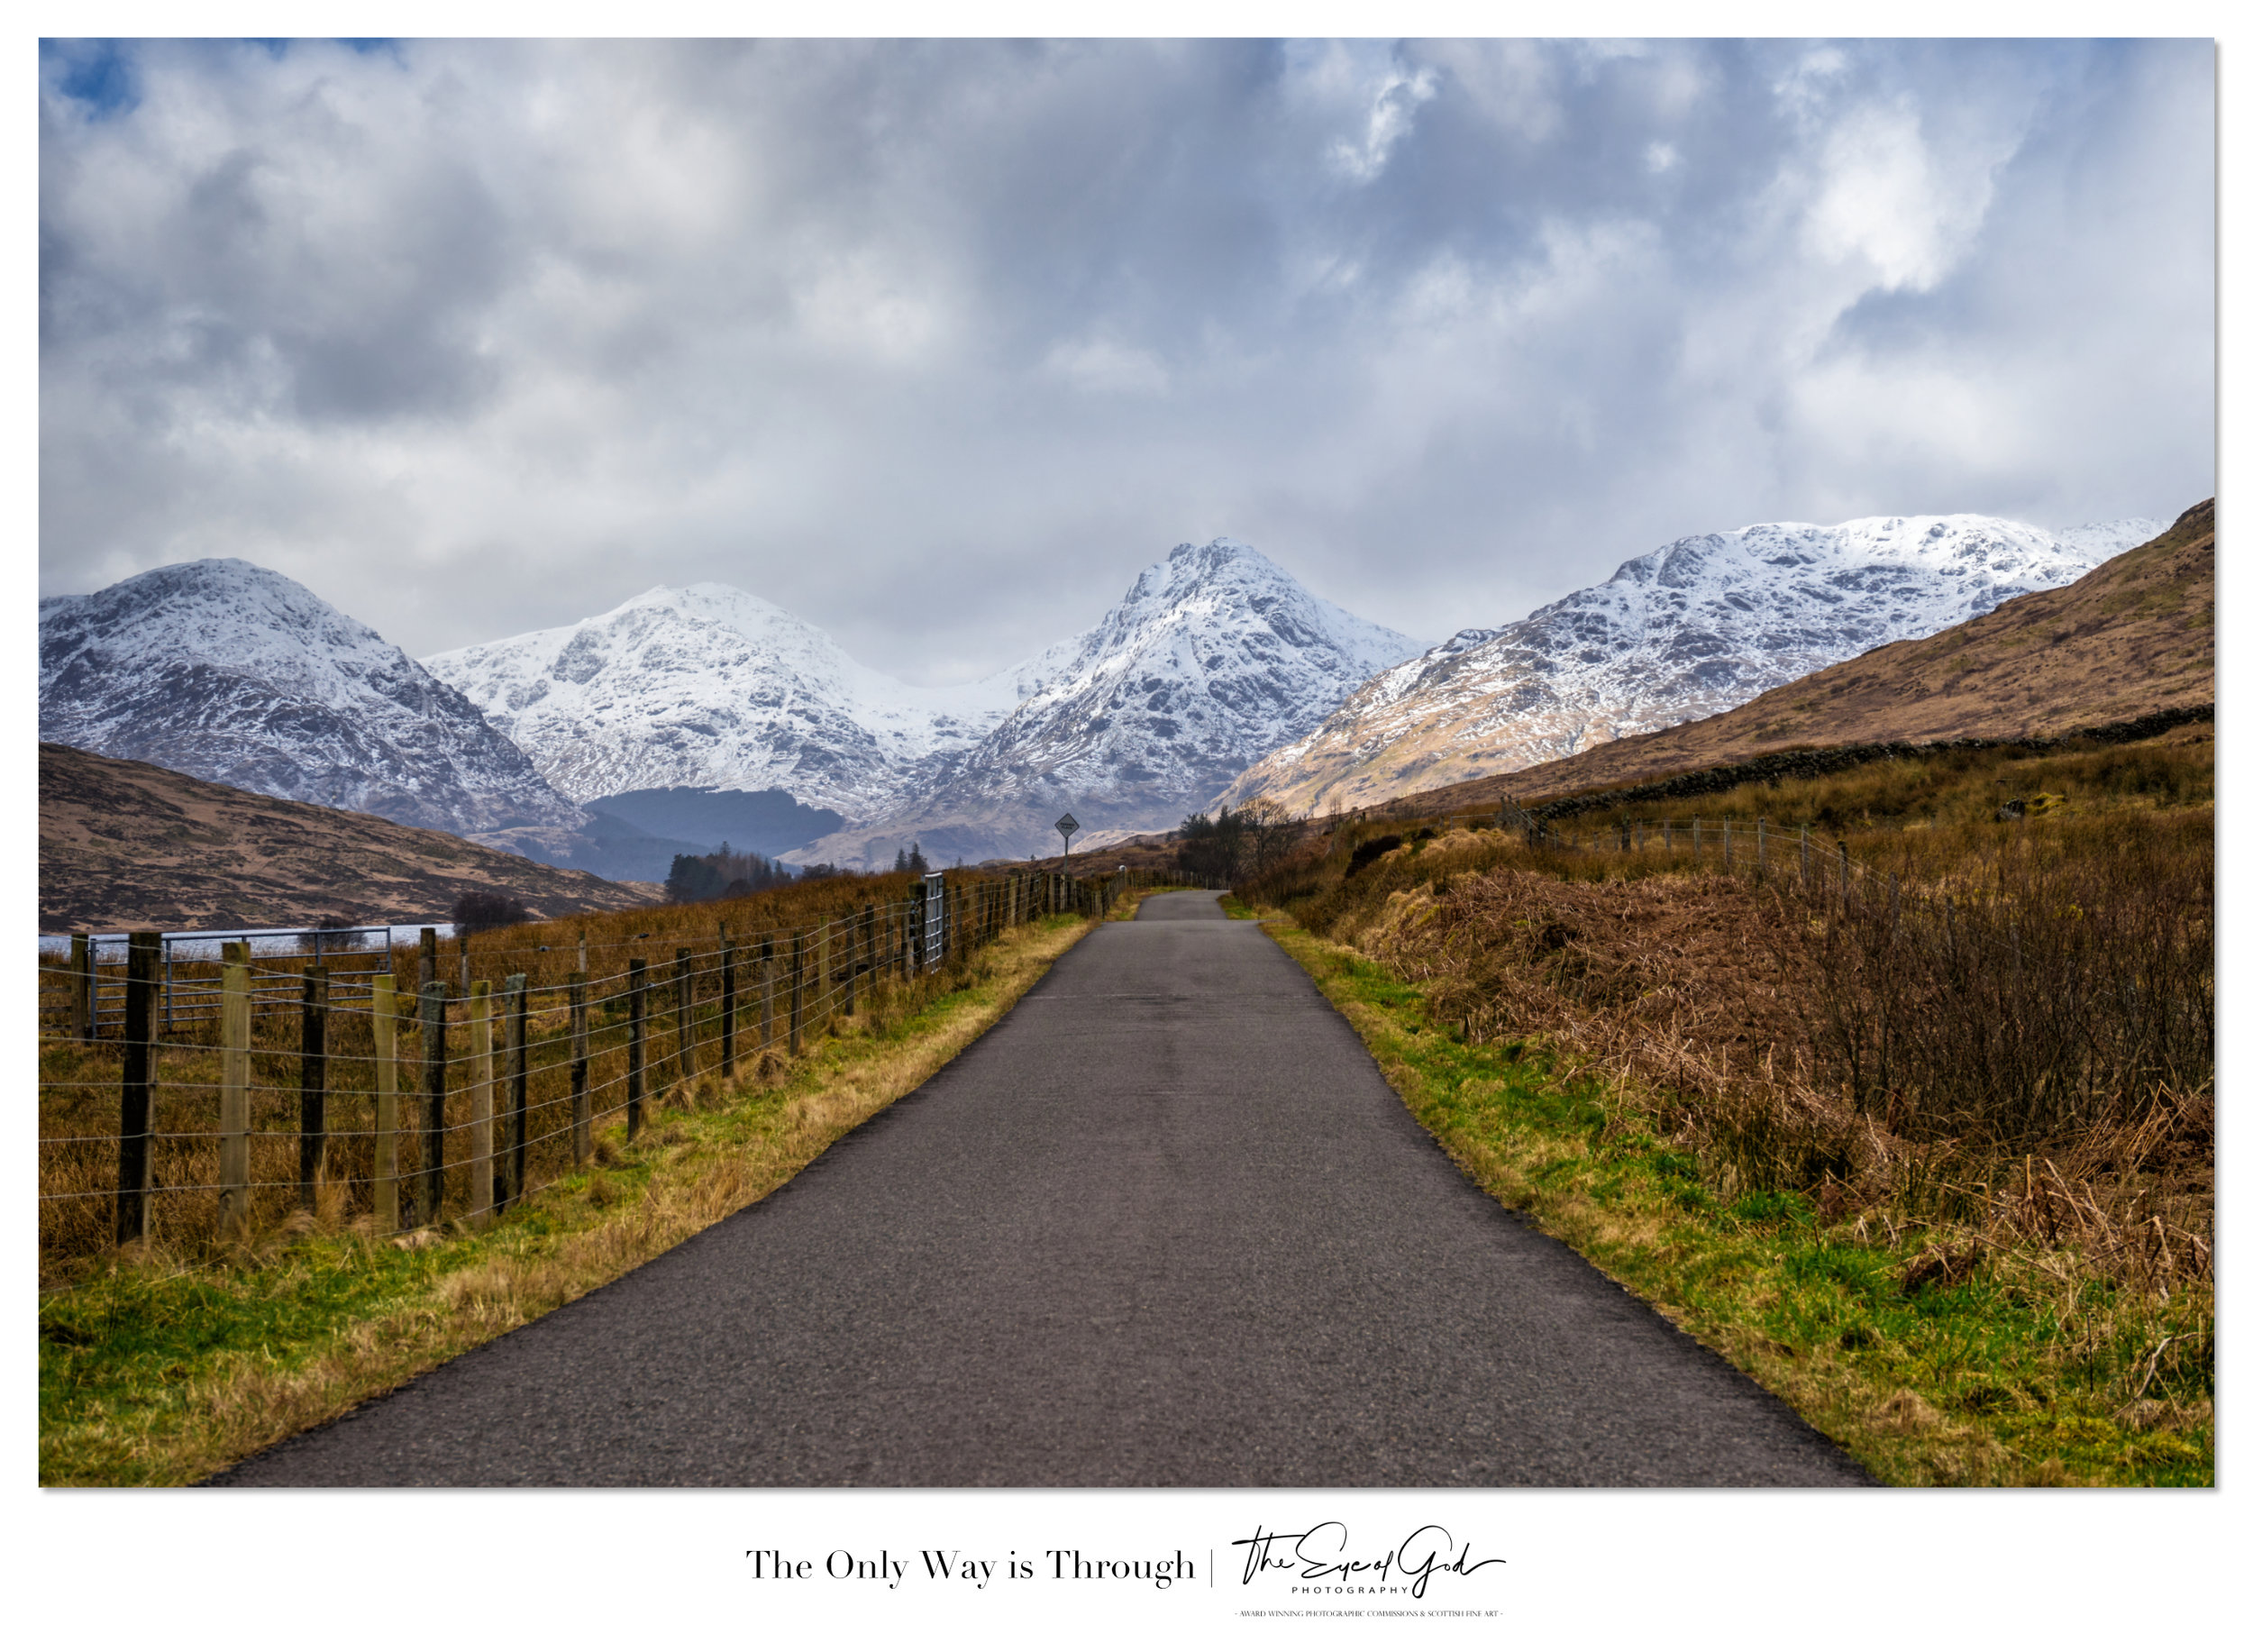 The view towards the Arrochar Alps from the roadside at Loch Arklet